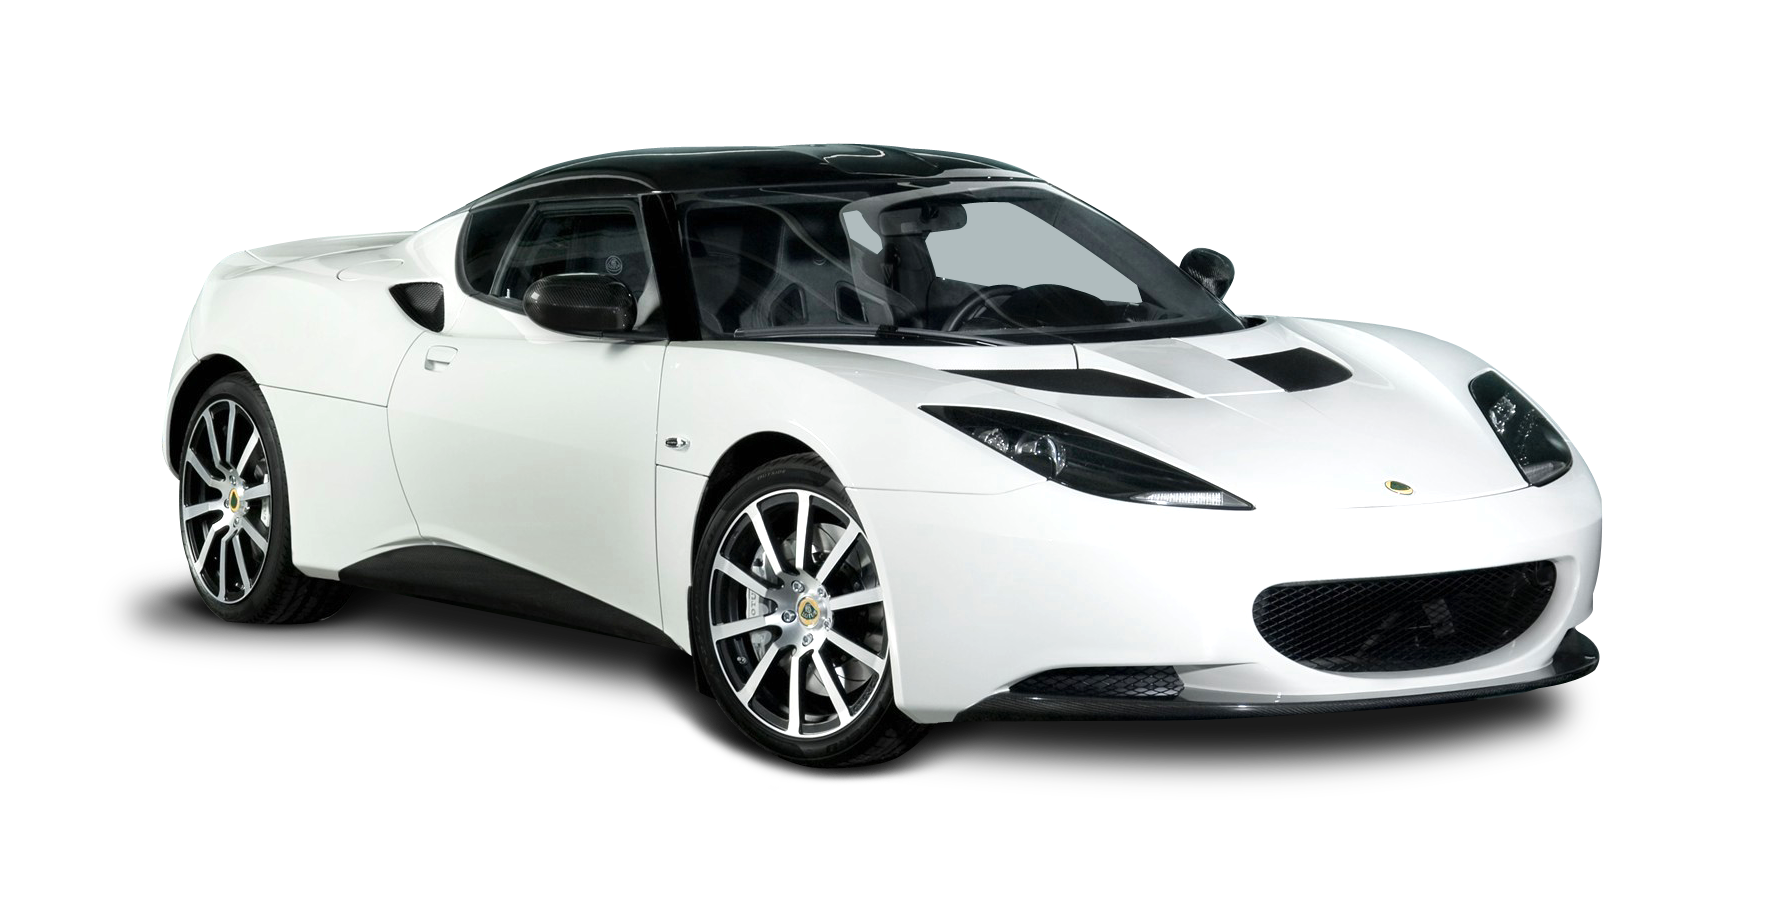 Pin By Mercury On Vision Board In 2020 Car White Lotus Evora